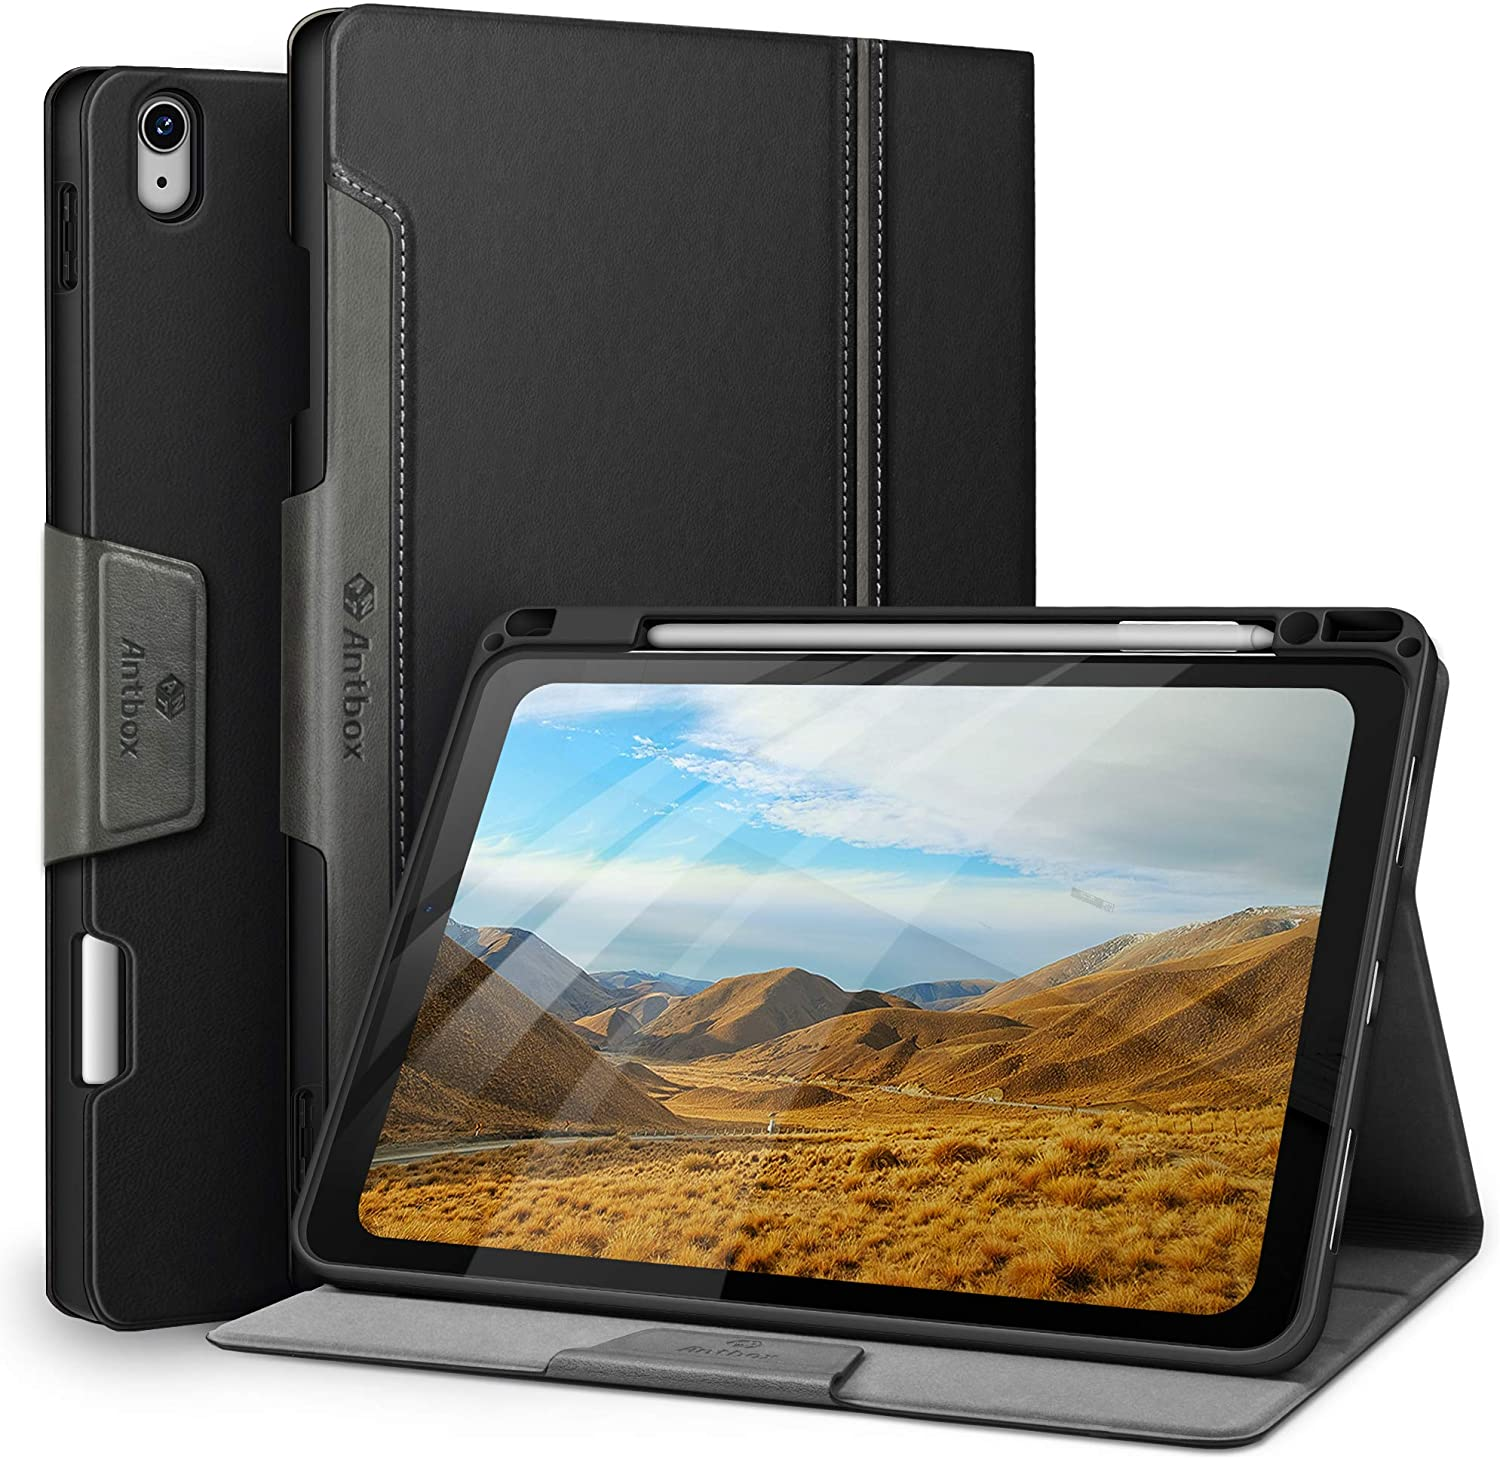 Antbox Case for iPad Air 4 10.9